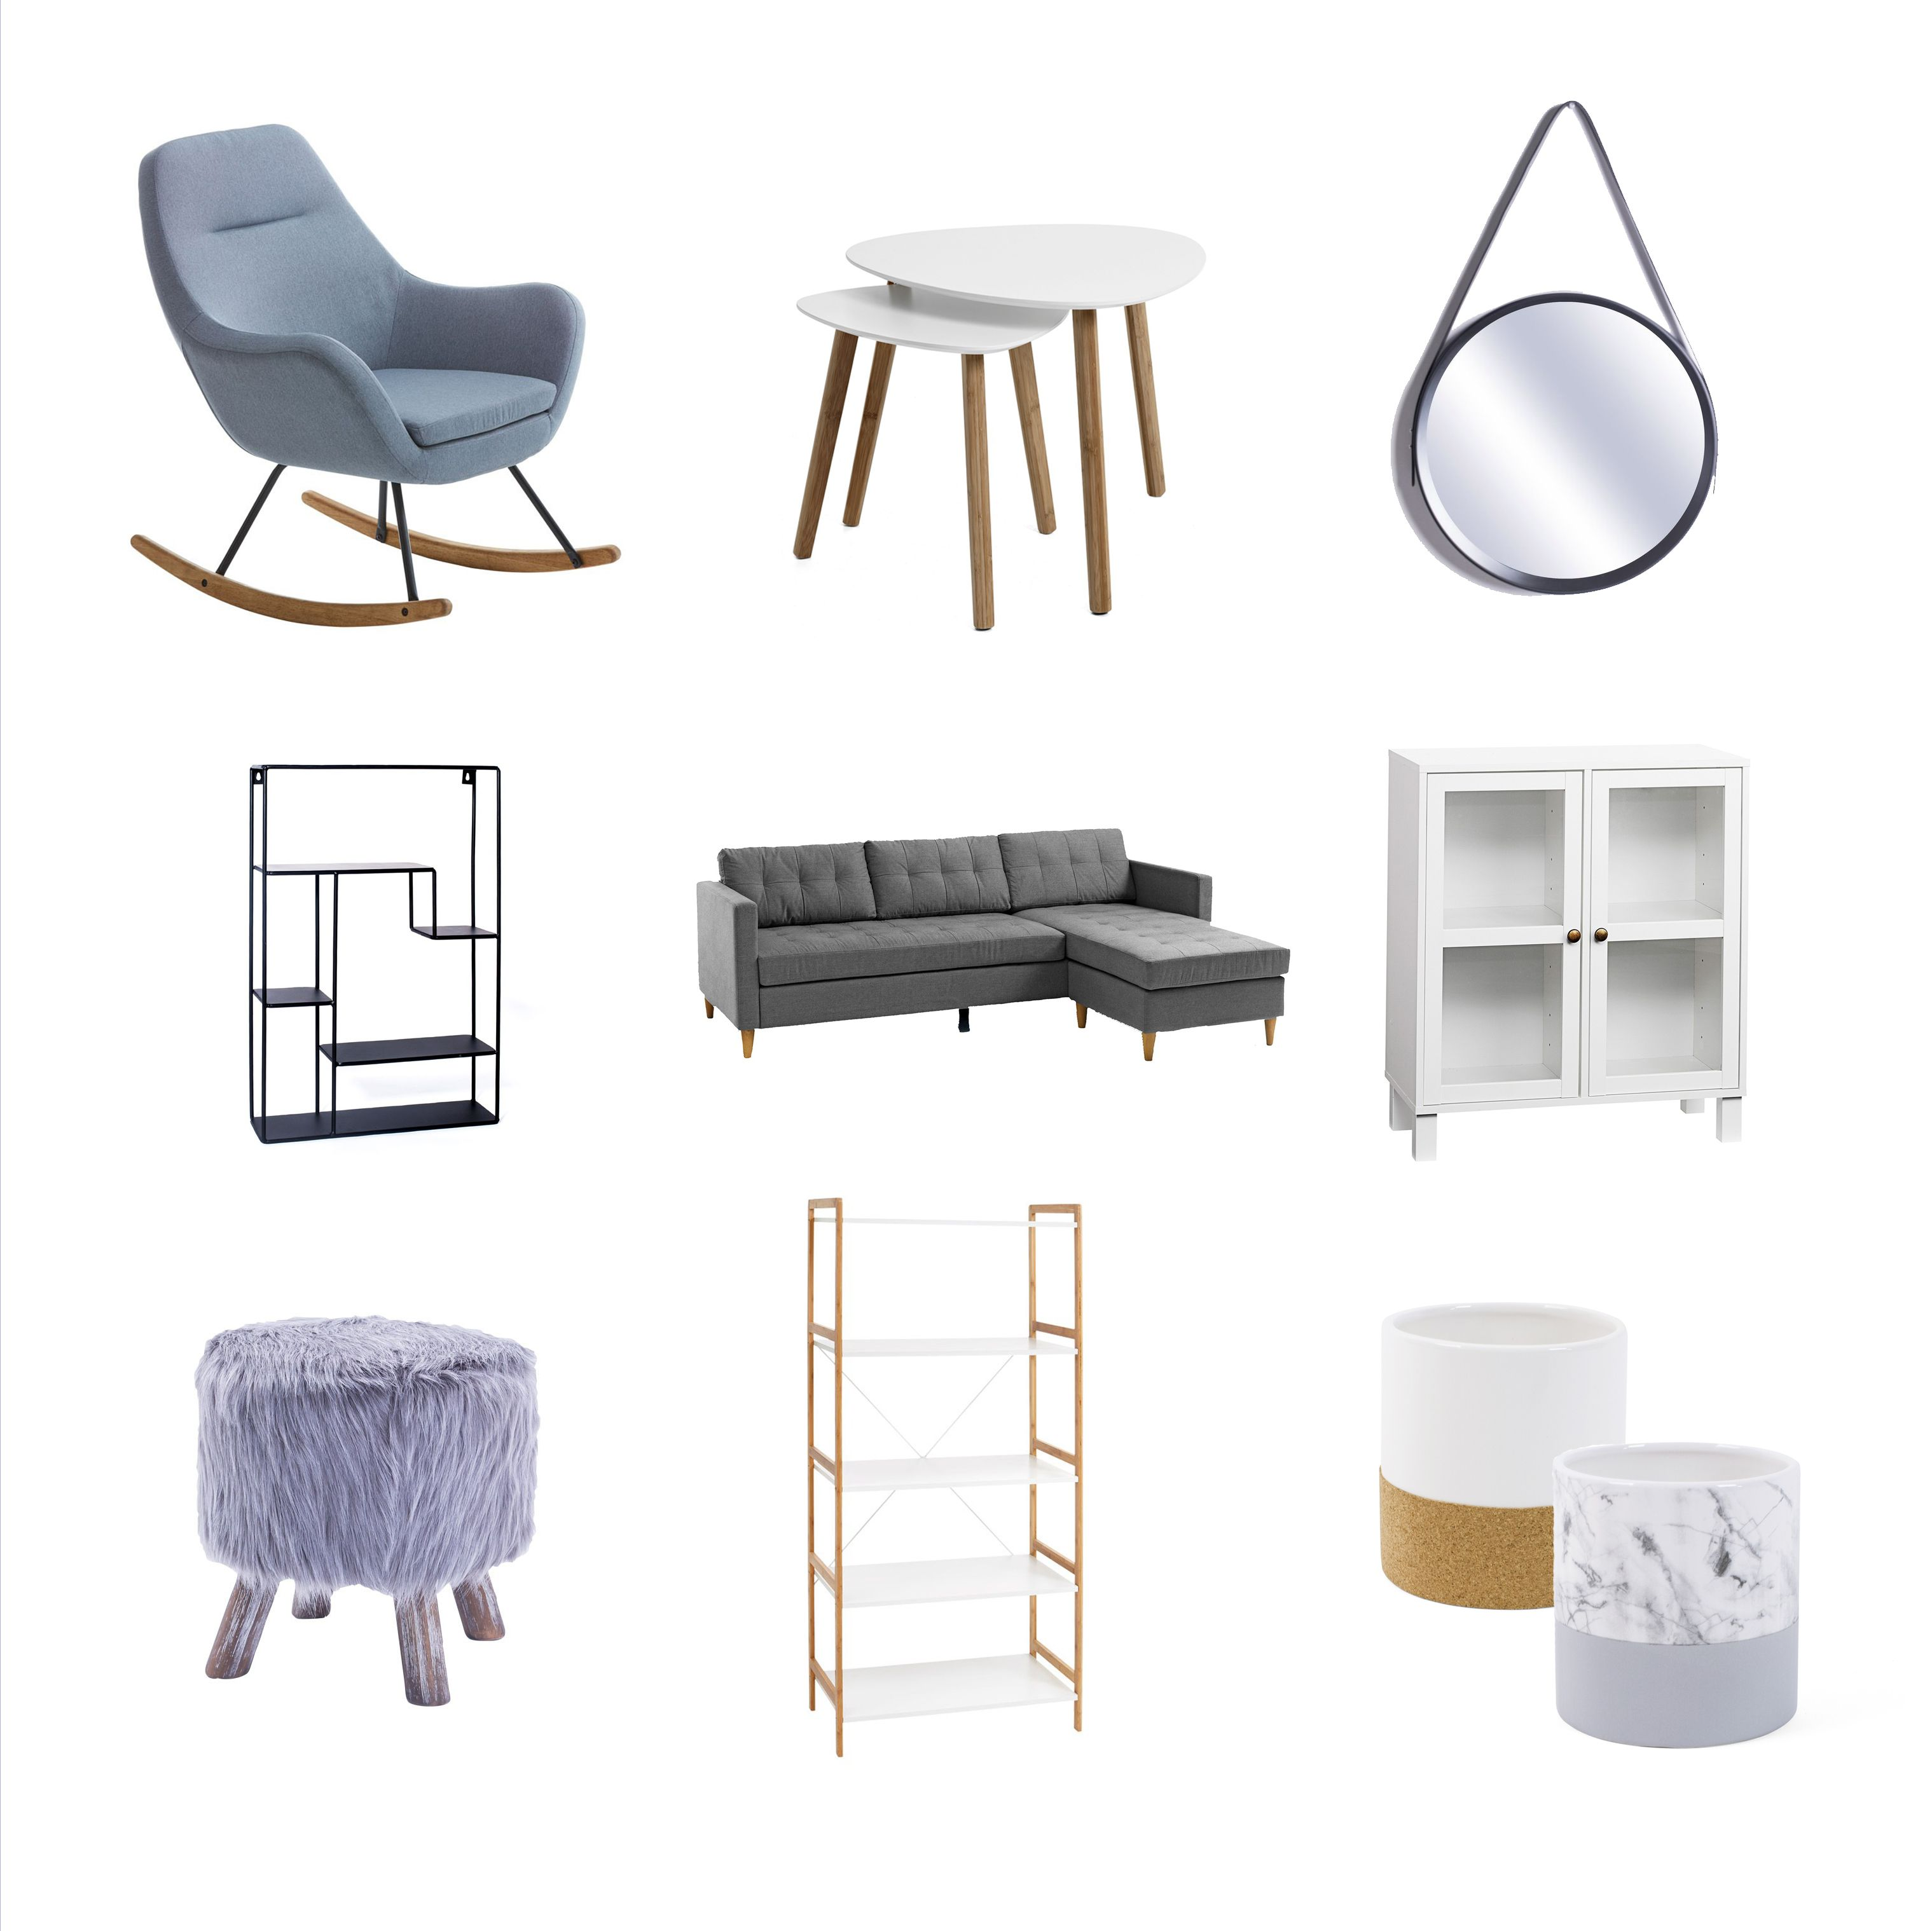 Our scandinavian designed selection is appealing in its modern